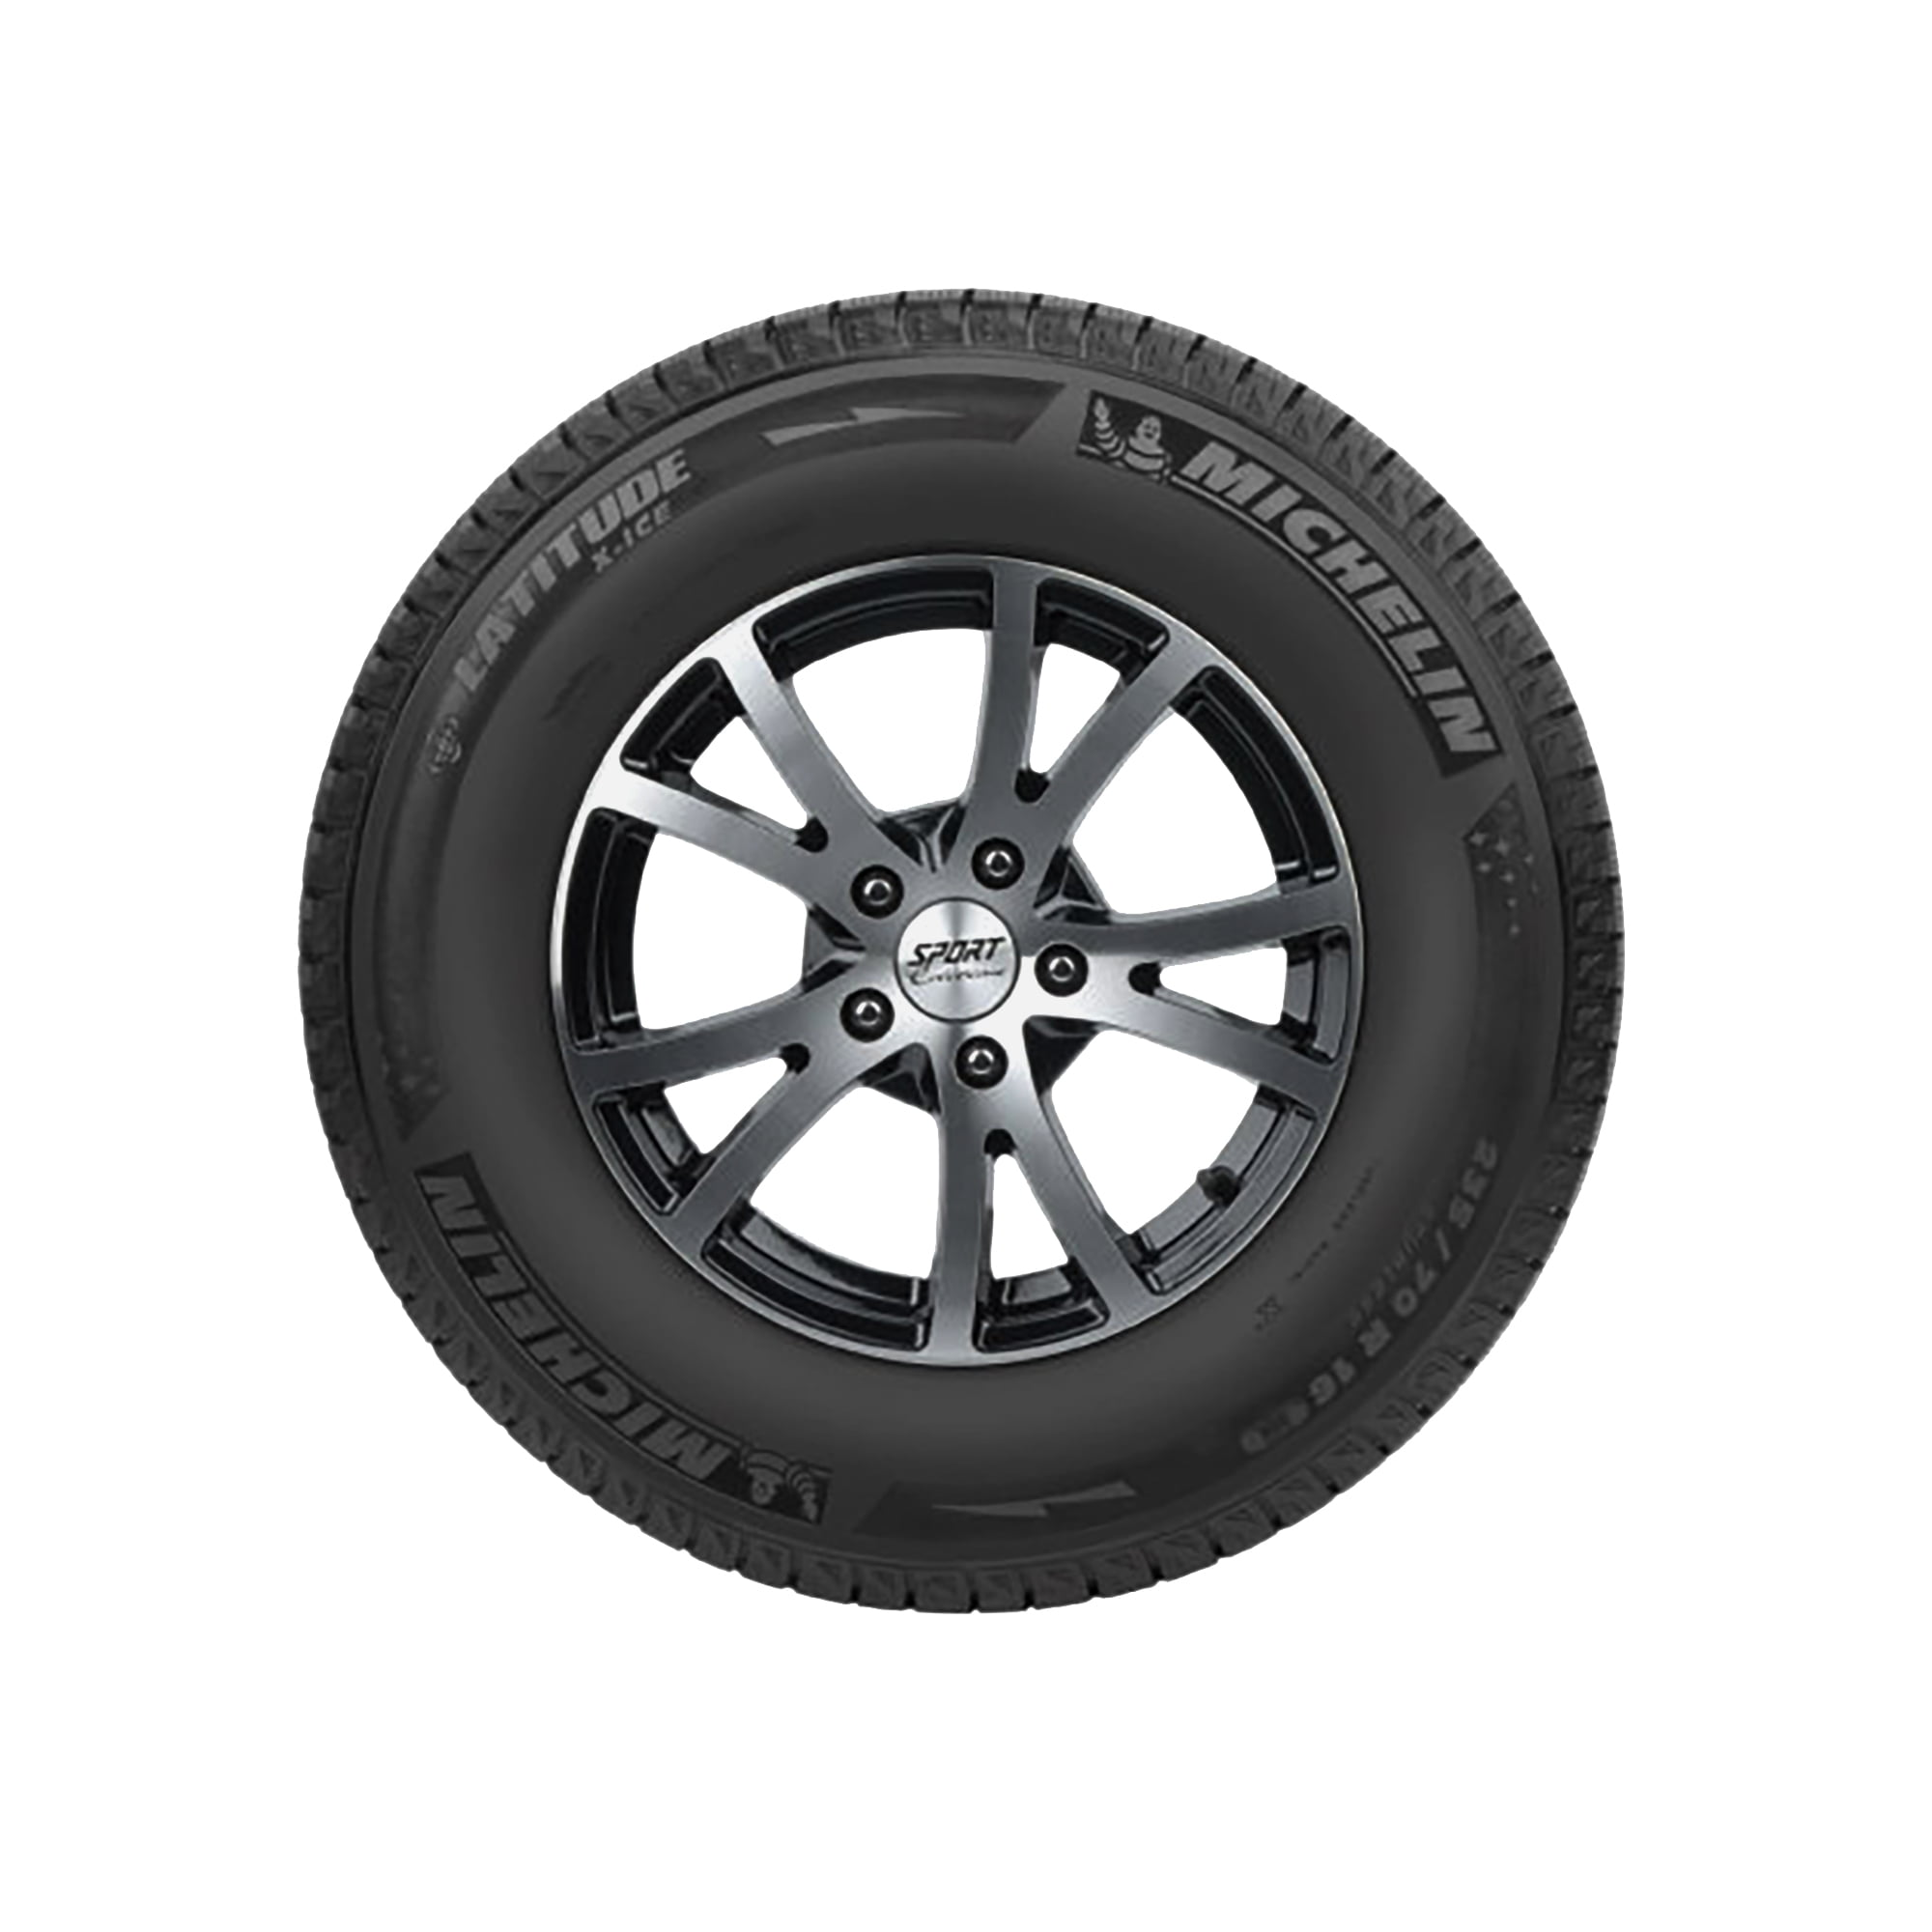 Winter Tires Goodyear Nordic Or Michelin X Ice Xi2 >> Michelin Latitude X Ice Xi2 Winter Tire 235 65r17 Xl 108t